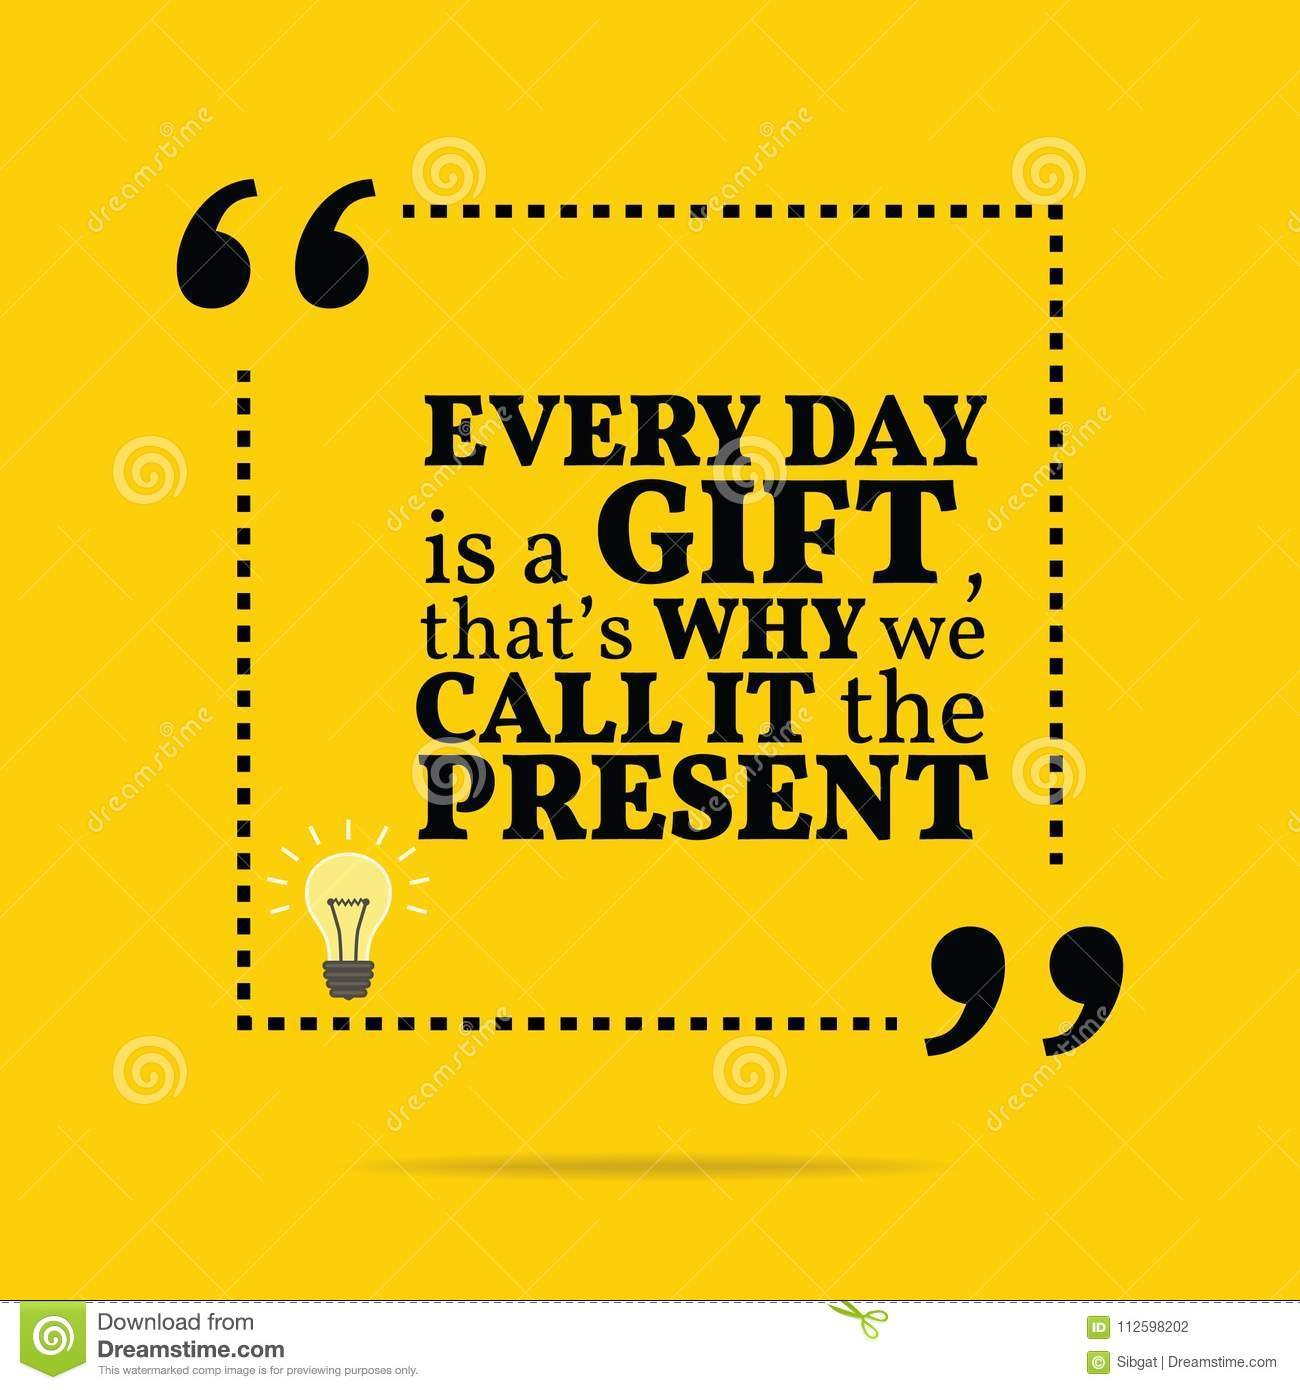 Image of: Motivational Quotes Inspirational Motivational Quote Every Day Is Gift Thats Wh Dreamstimecom Inspirational Motivational Quote Every Day Is Gift Thats Wh